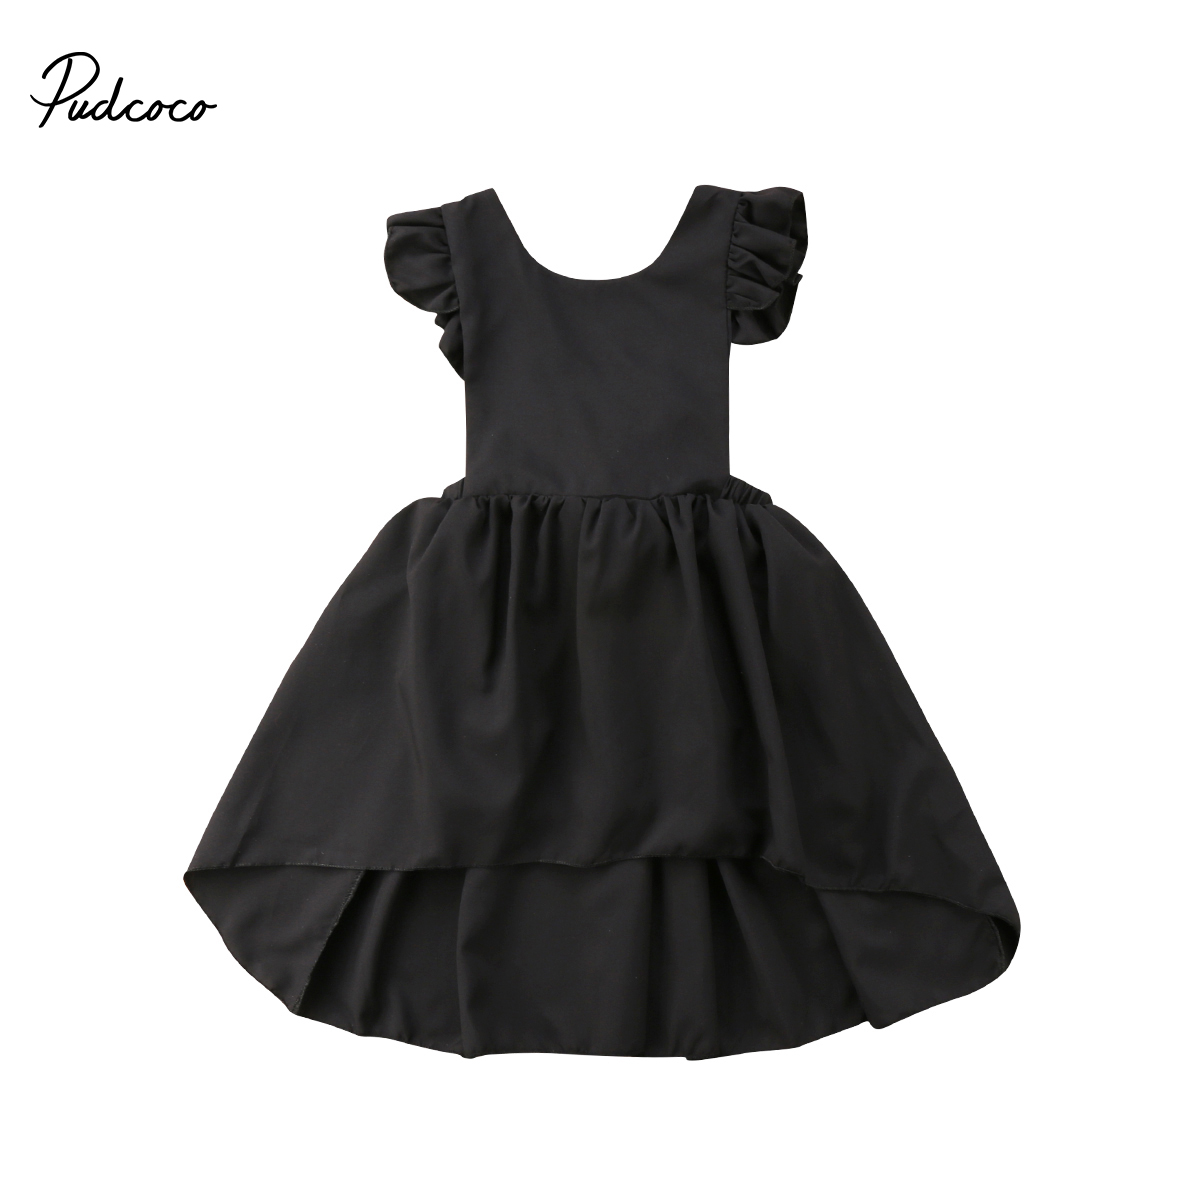 2018 Brand New Toddler Child Kids Baby Girl Infant Summer Bowknot Sleeveless Chiffon Ruffled Dress Solid Backless Sundress 1-5T baby girls infant wedding party bowknot sleeveless ruffled vest dress sundress